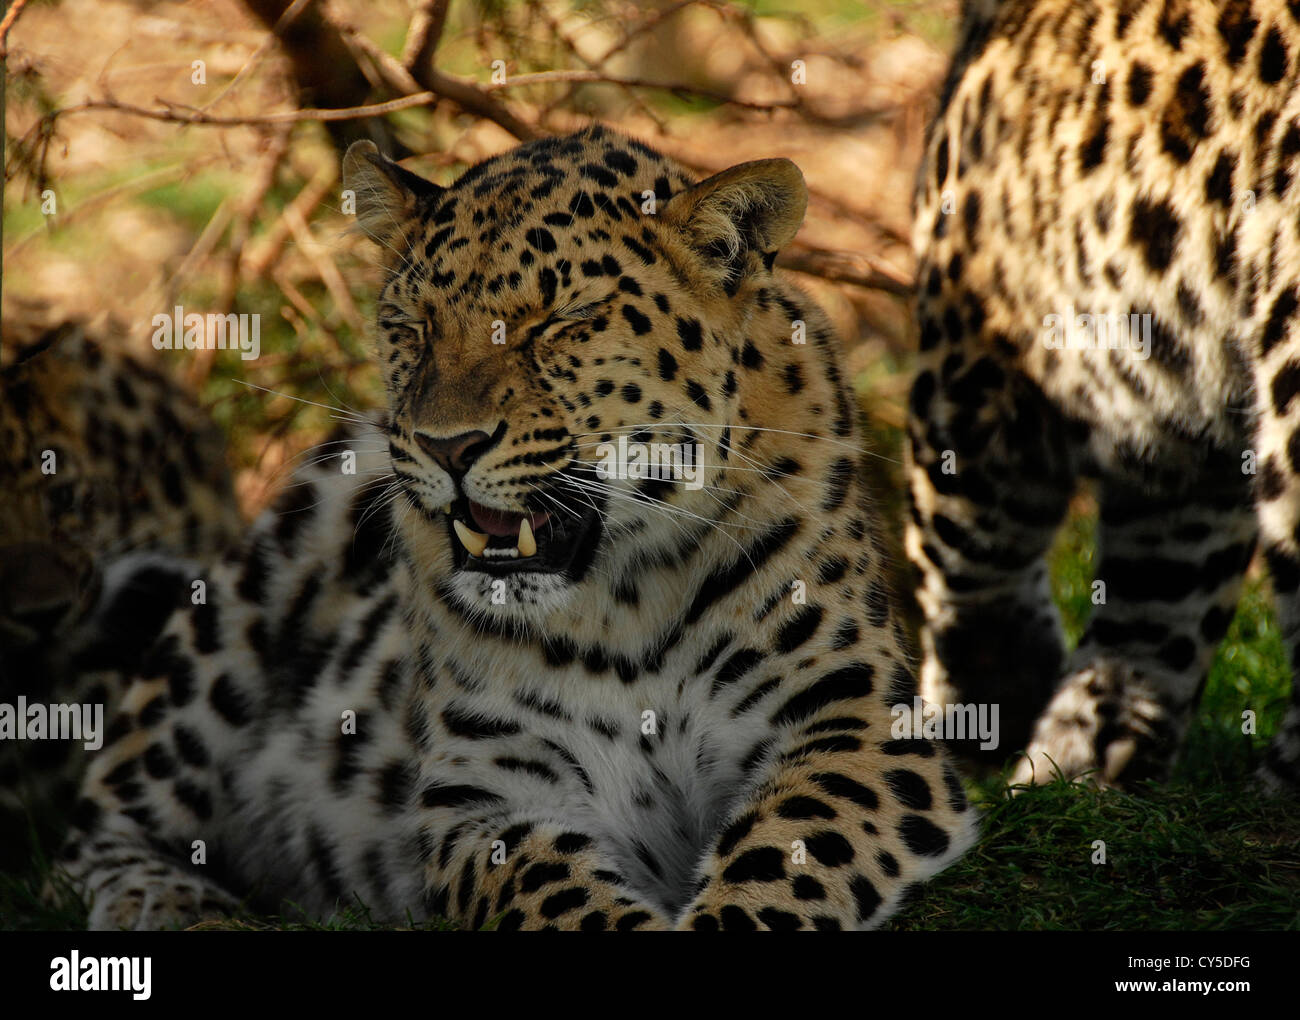 Three Amur Leopards. Mother with two large cubs. - Stock Image